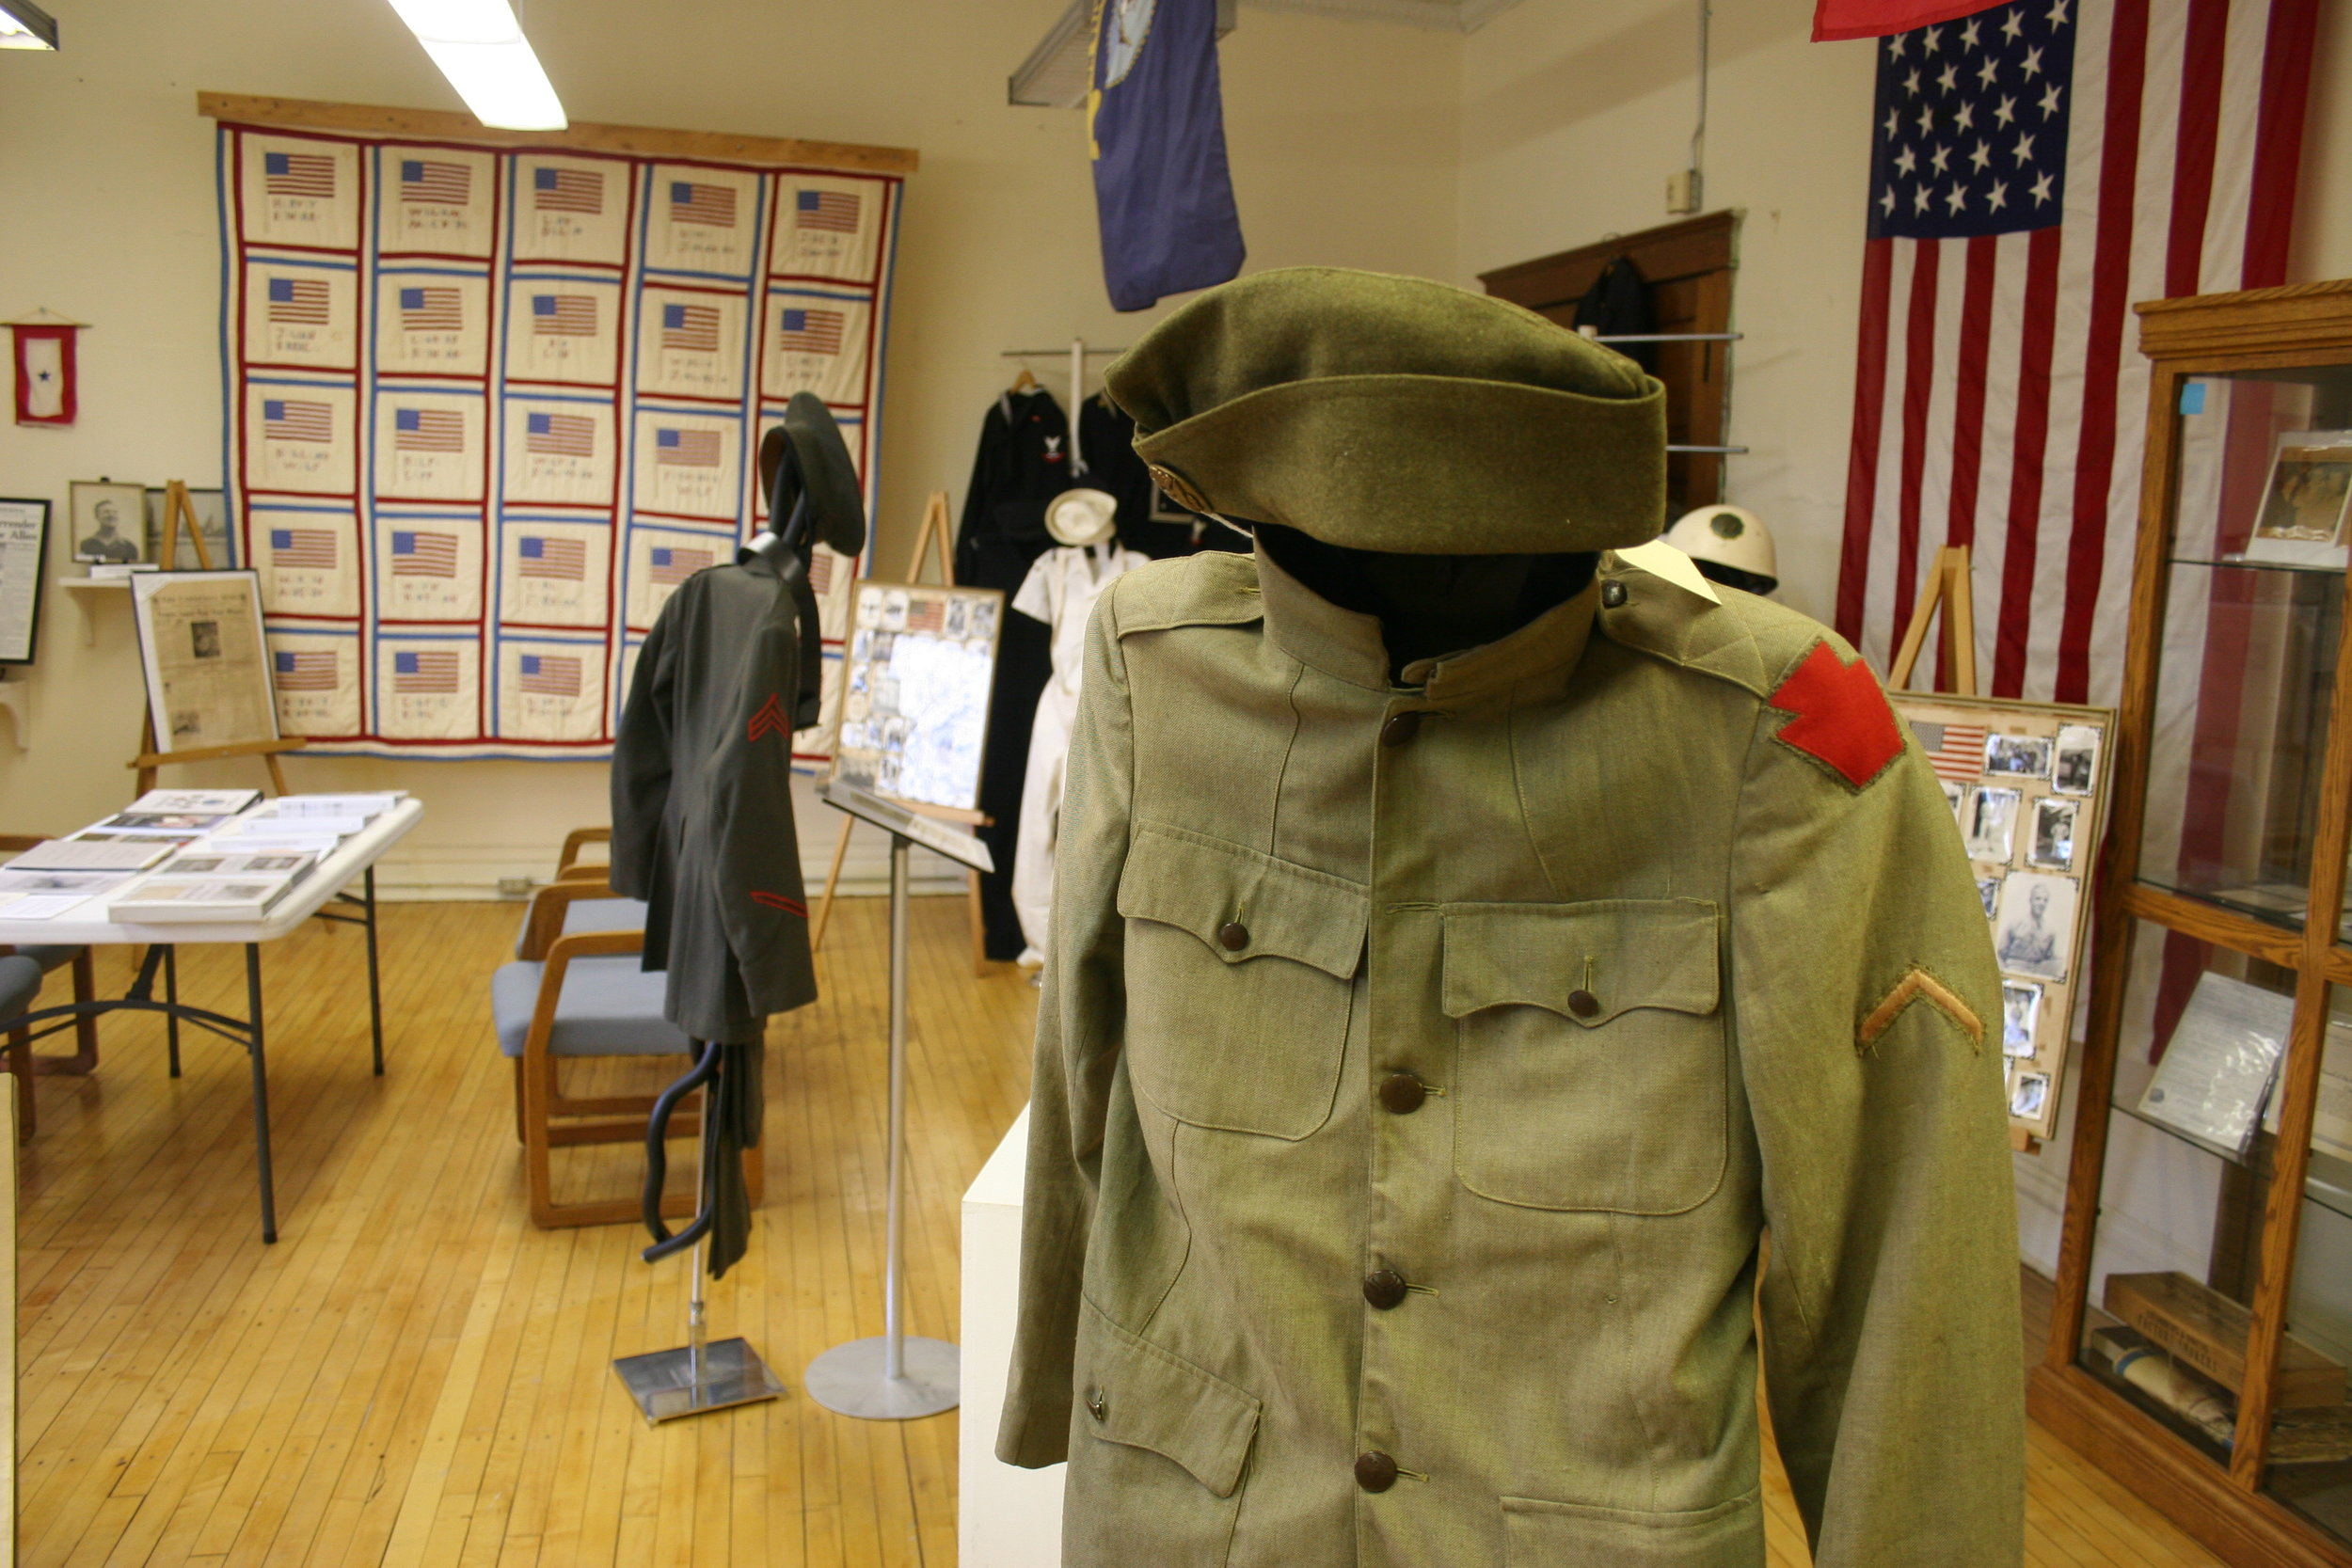 You'll see uniforms and memorabilia from the Civil War to present in our Veterans Room.